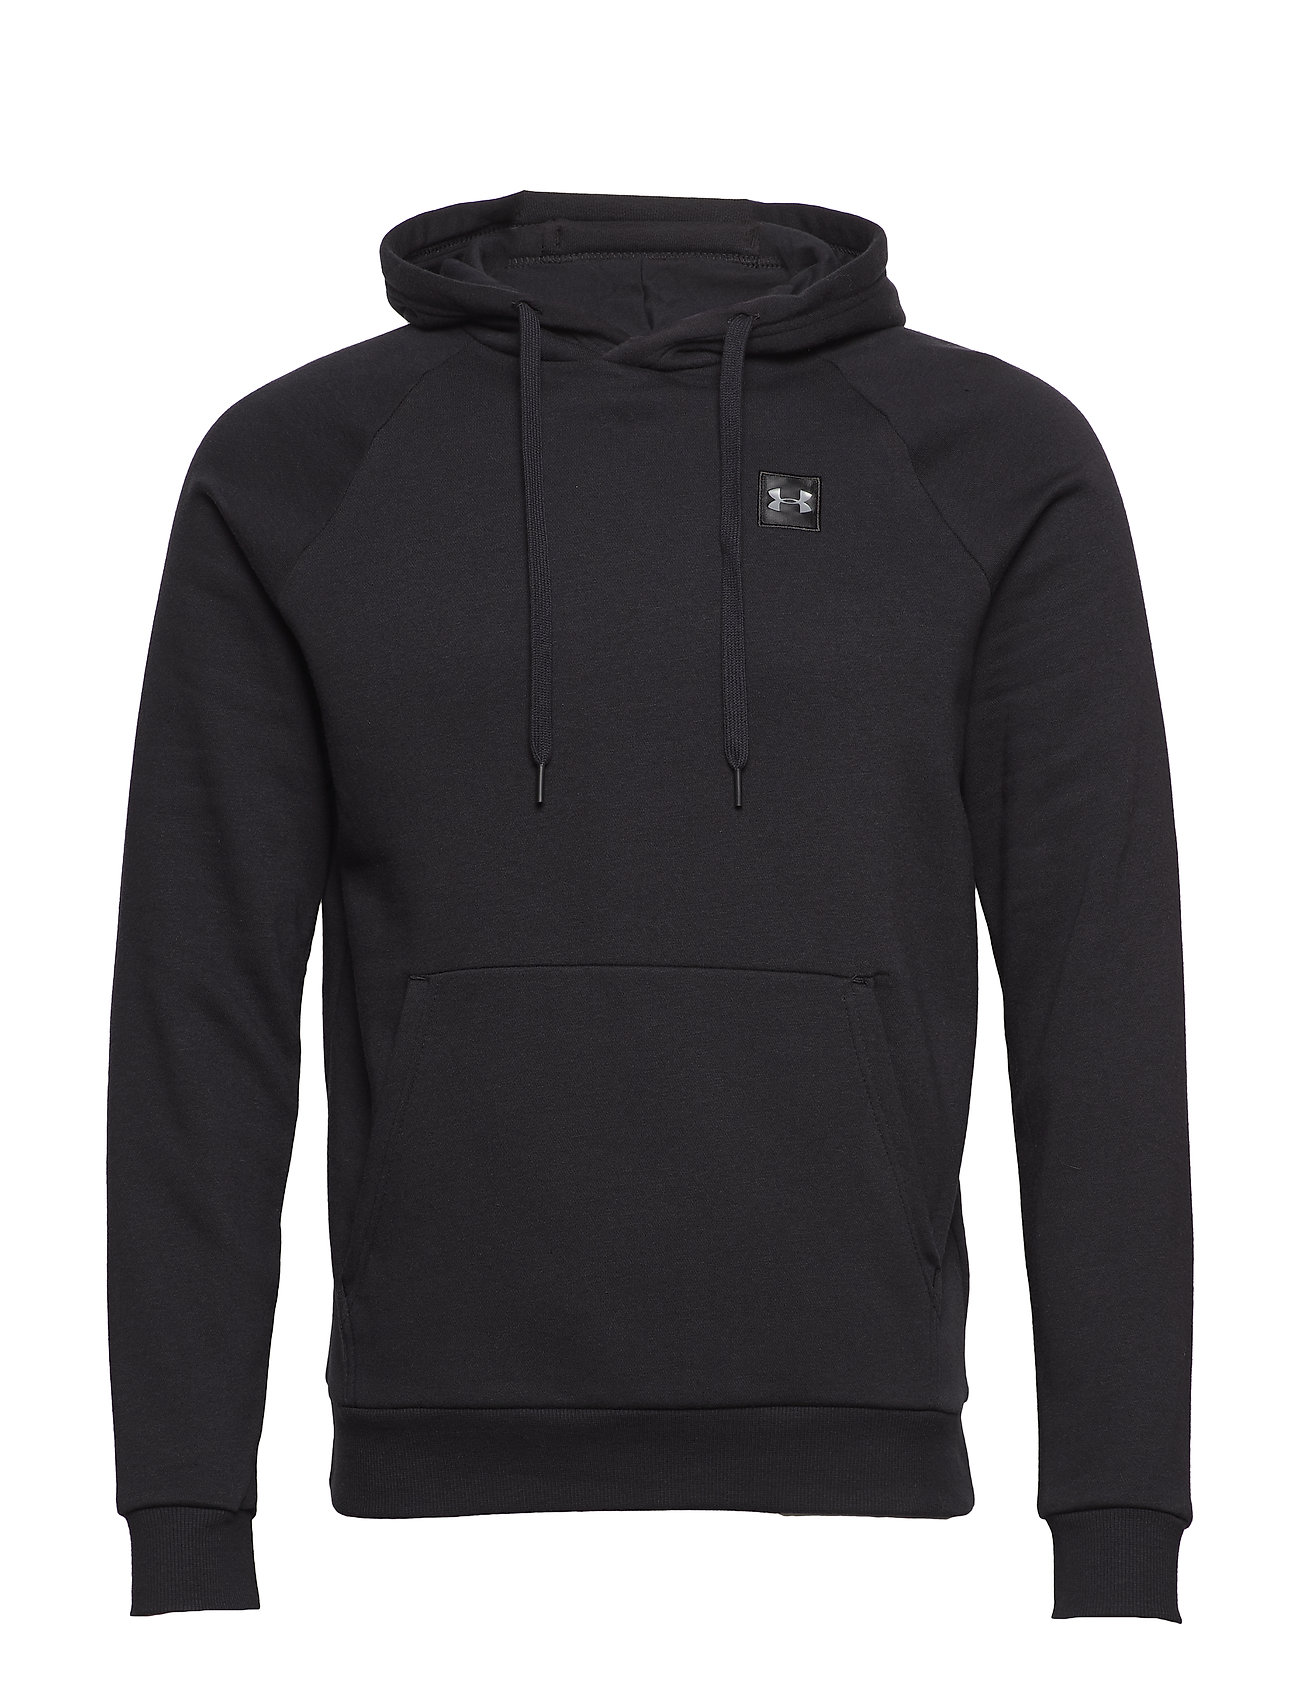 Under Armour RIVAL FLEECE PO HOODIE - BLACK